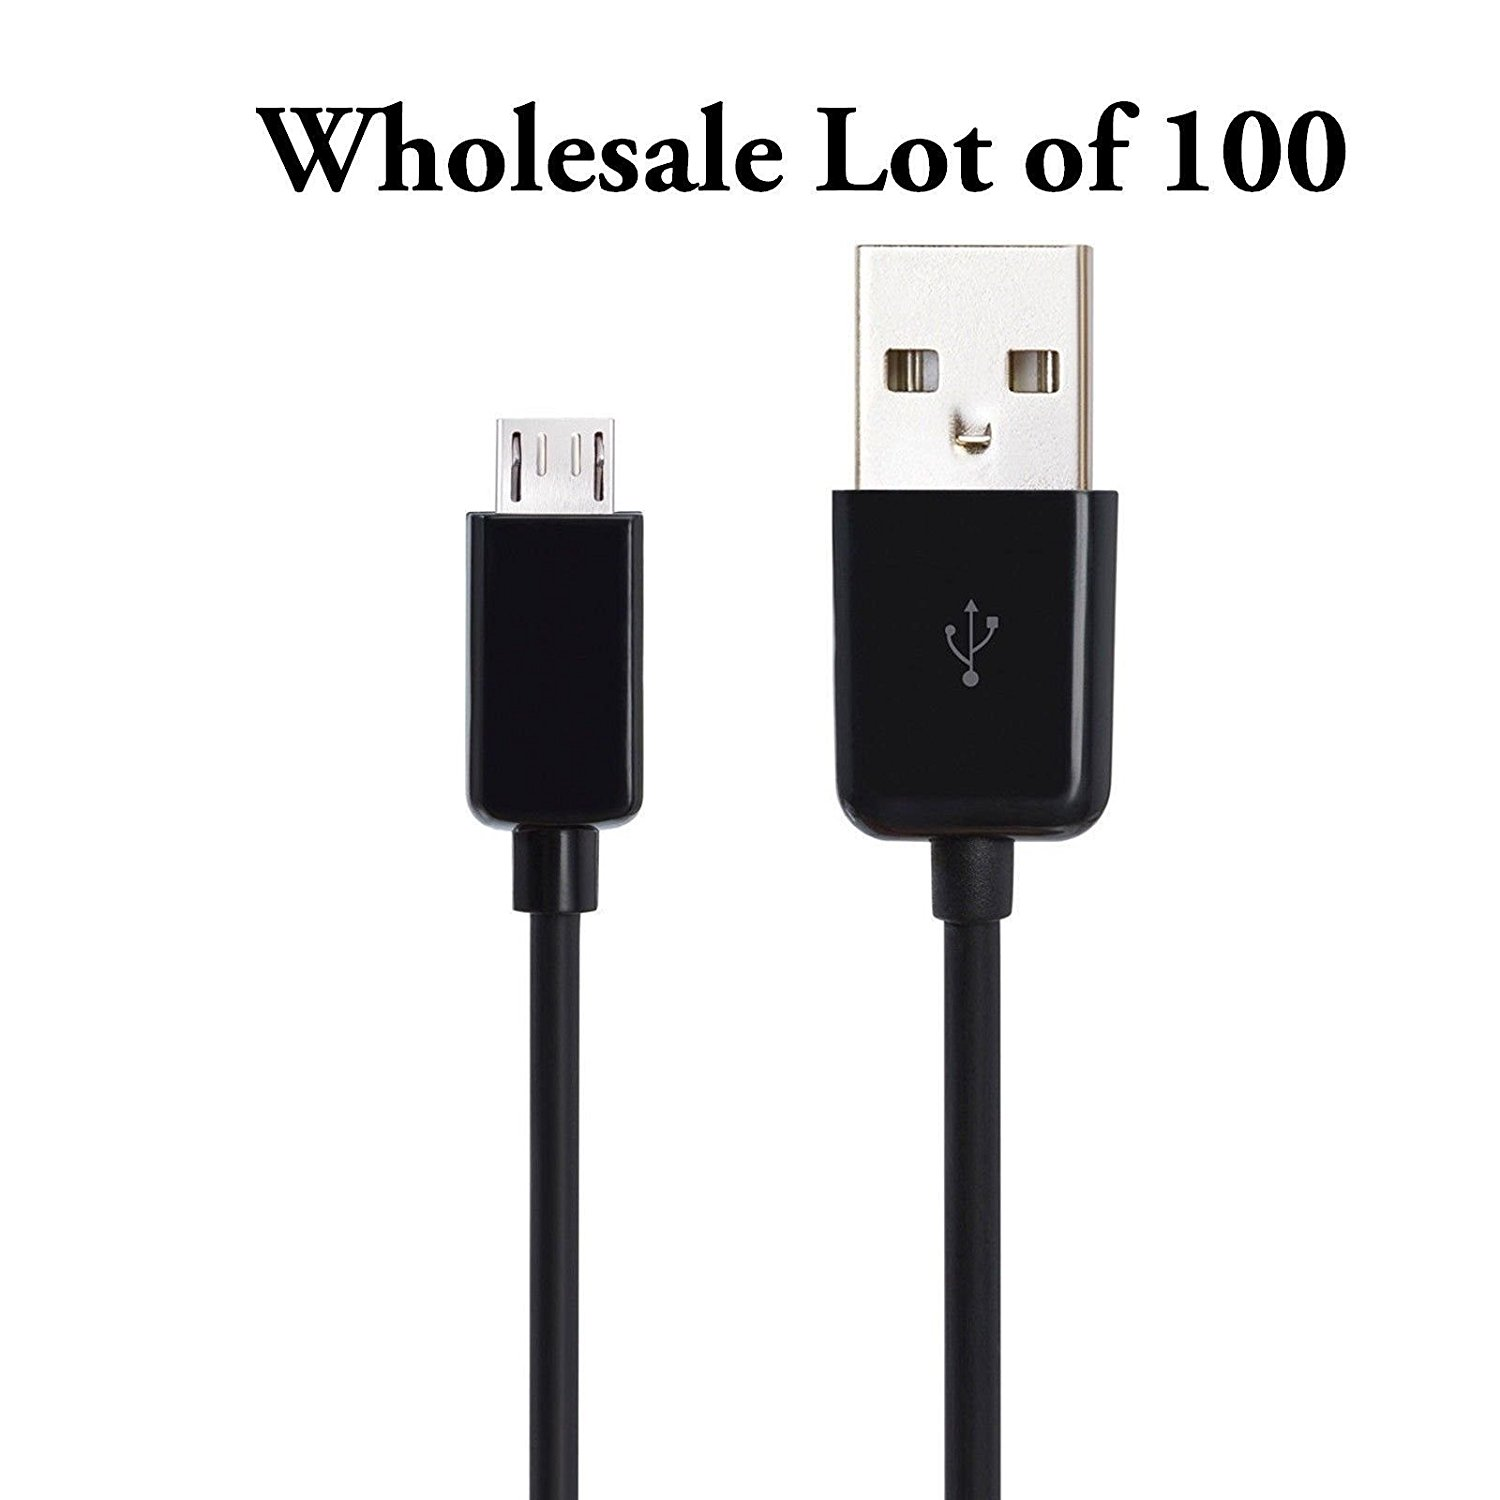 Focuslife 100 Wholesale Micro-USB Charger Data Sync Cable Cord for Samsung Galaxy S2 S3 S4 S5 S6 Edge Note 1 2 3 4 5 I II III LG G2 G3 G4 Nexus Motorola Droid